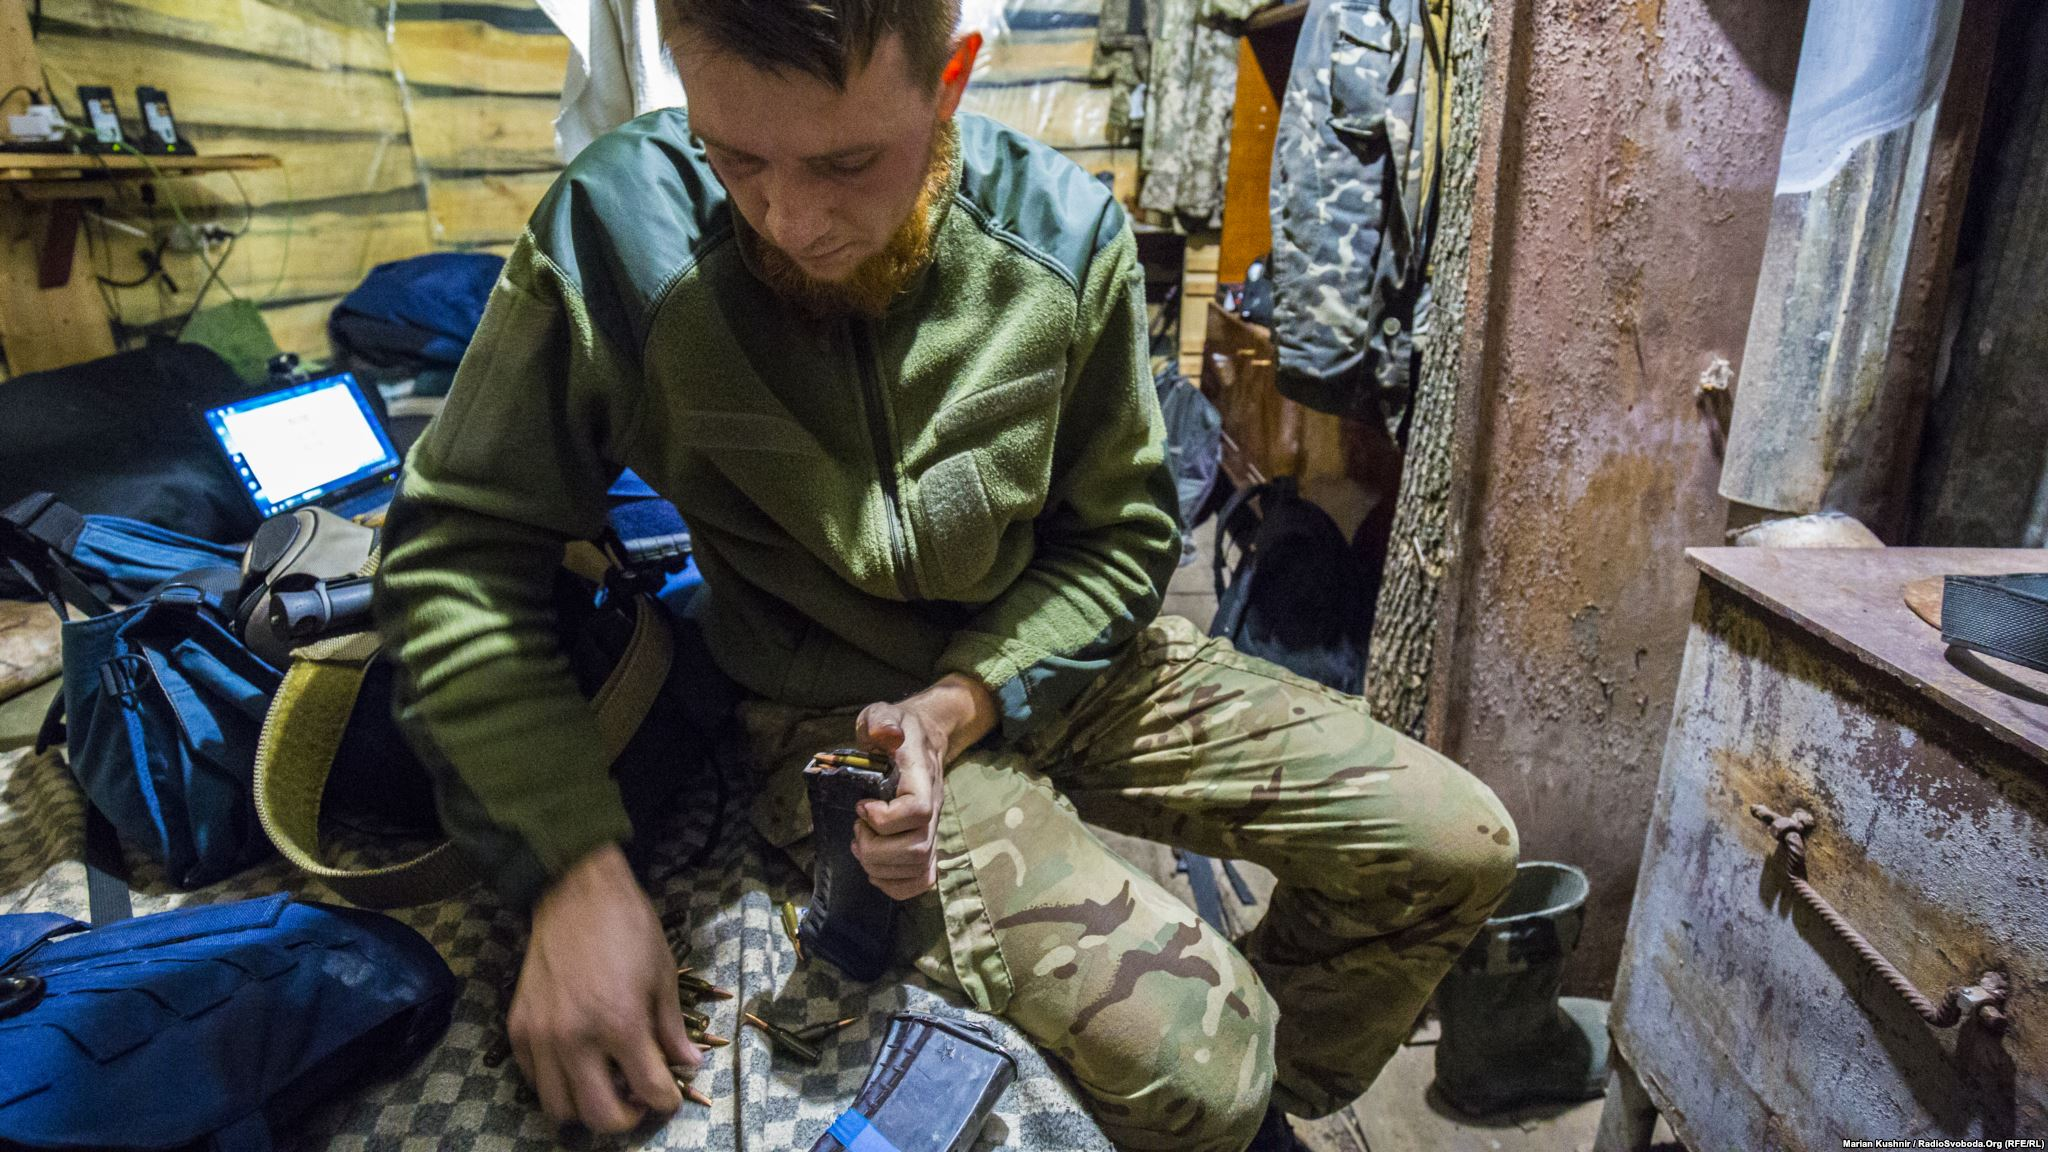 Yevhen loads rounds to assault rifle's magazine before going to the frontline with us